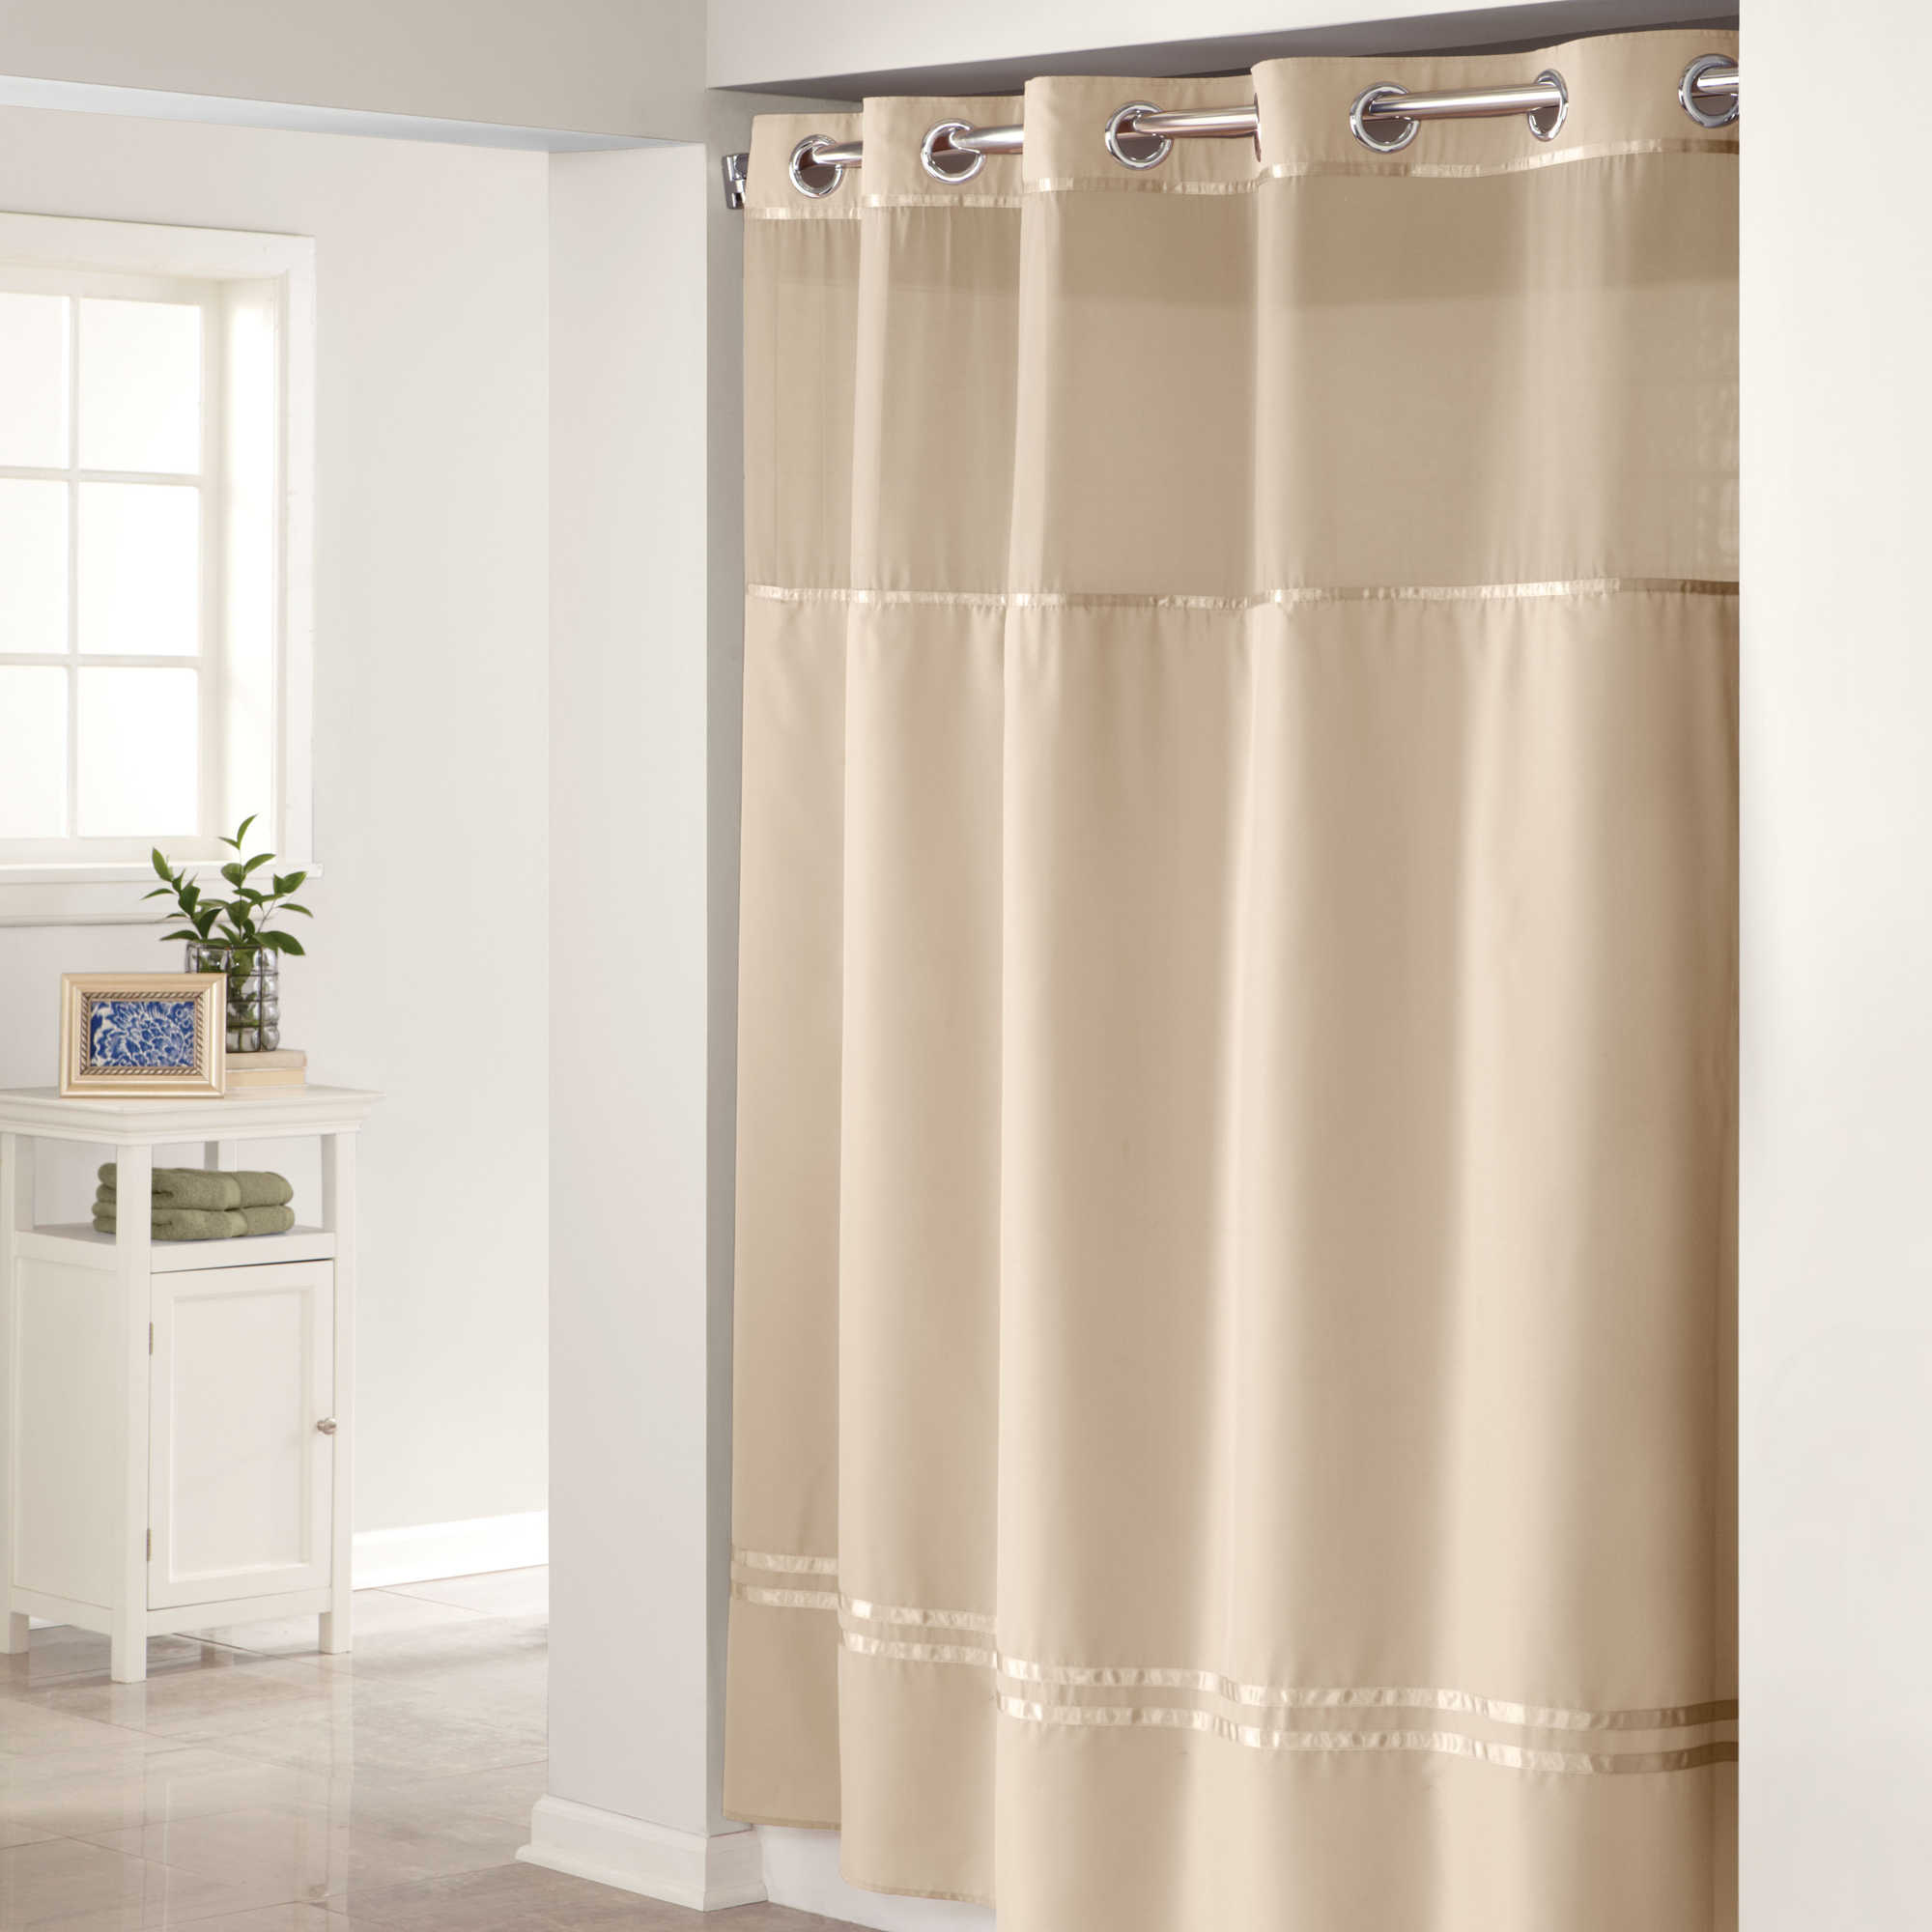 stall bathroom shower curtains plastic curtain waterproof treatments for window org small